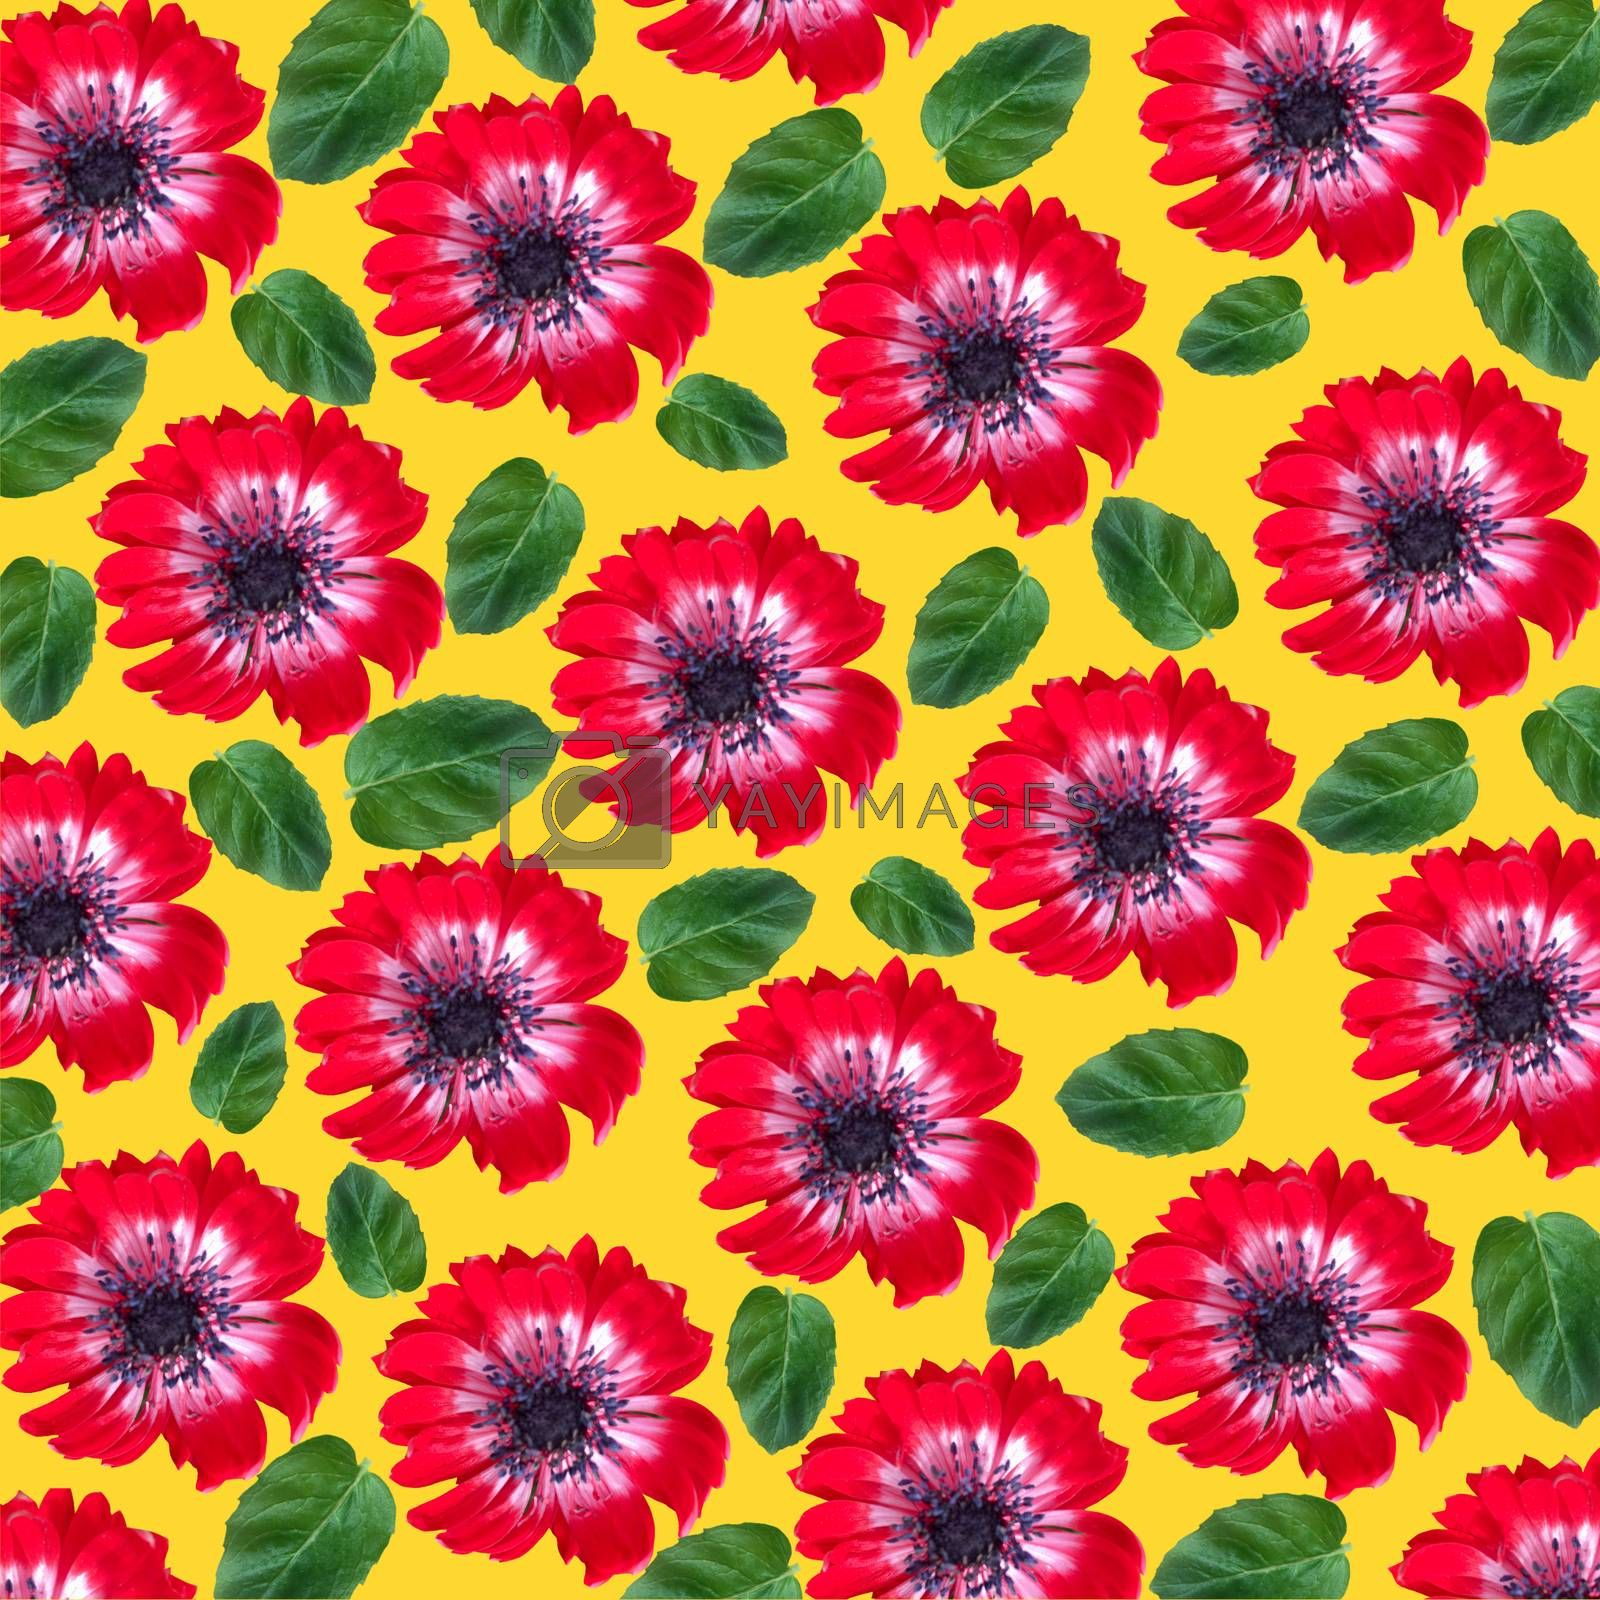 Floral pattern with red flowers and mint leaves by Margolana